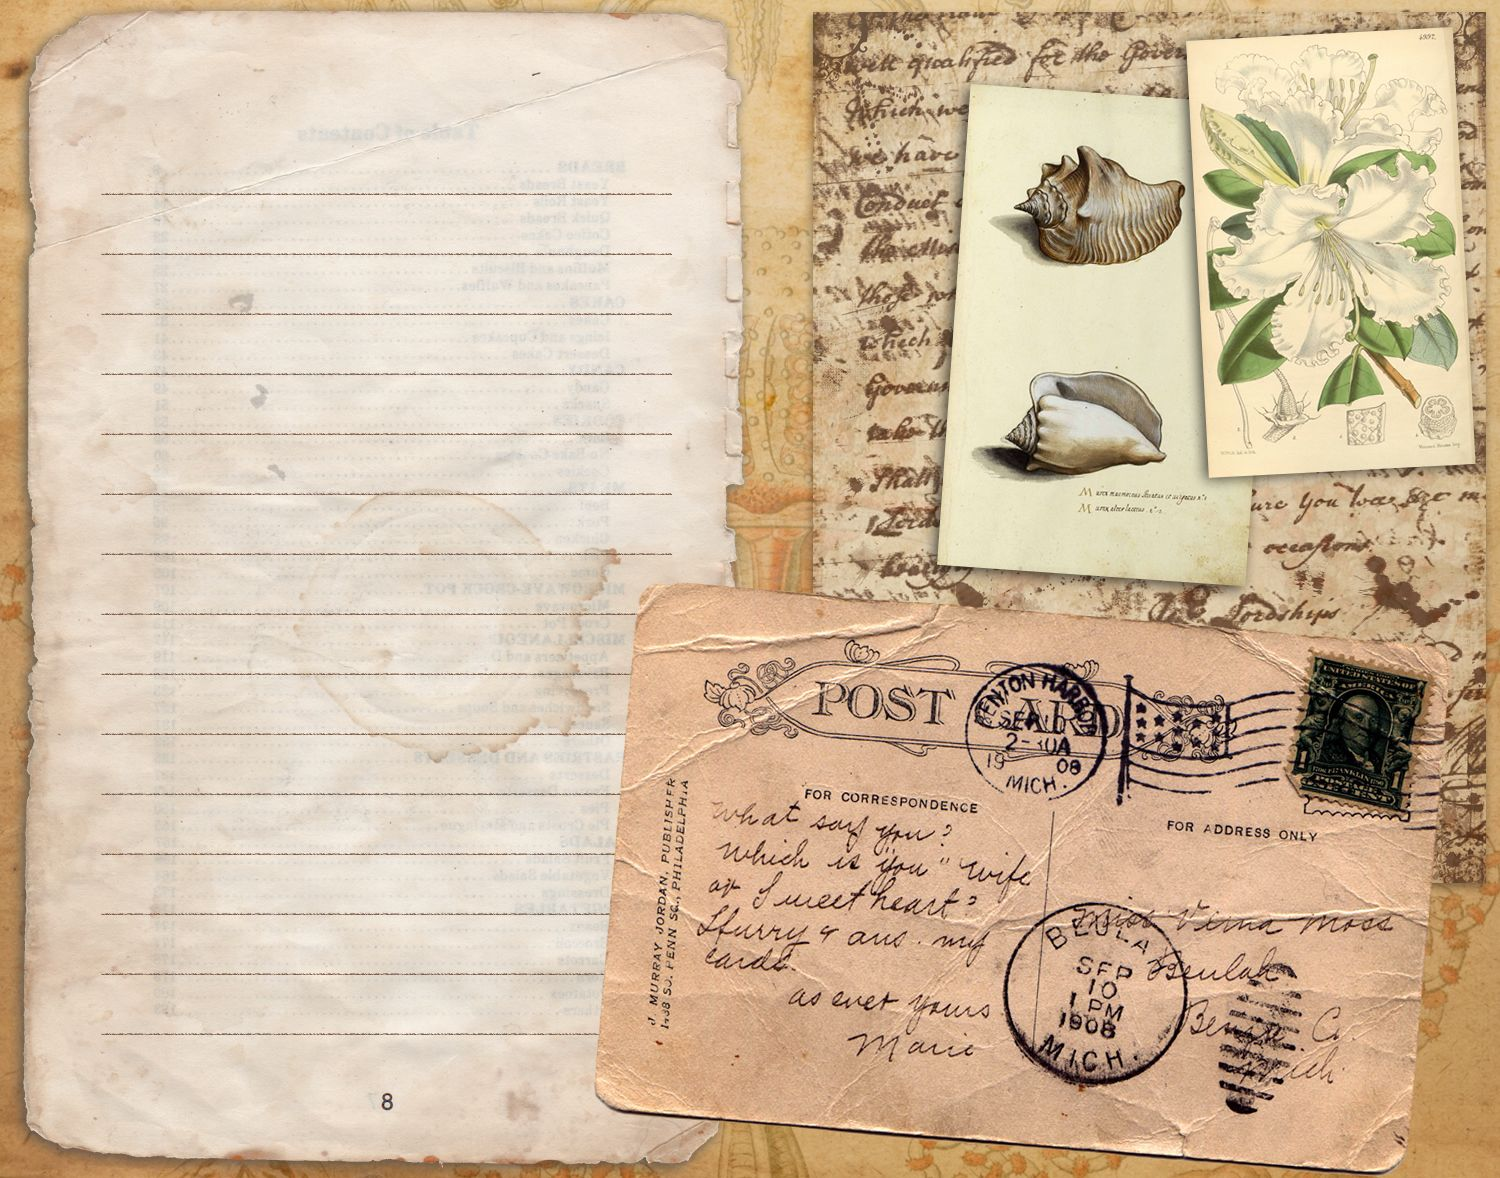 Print, Cut, Paste, Craft » Blog Archive » Artistic Journal: pimp your journal with the vintage scrapbooking cards